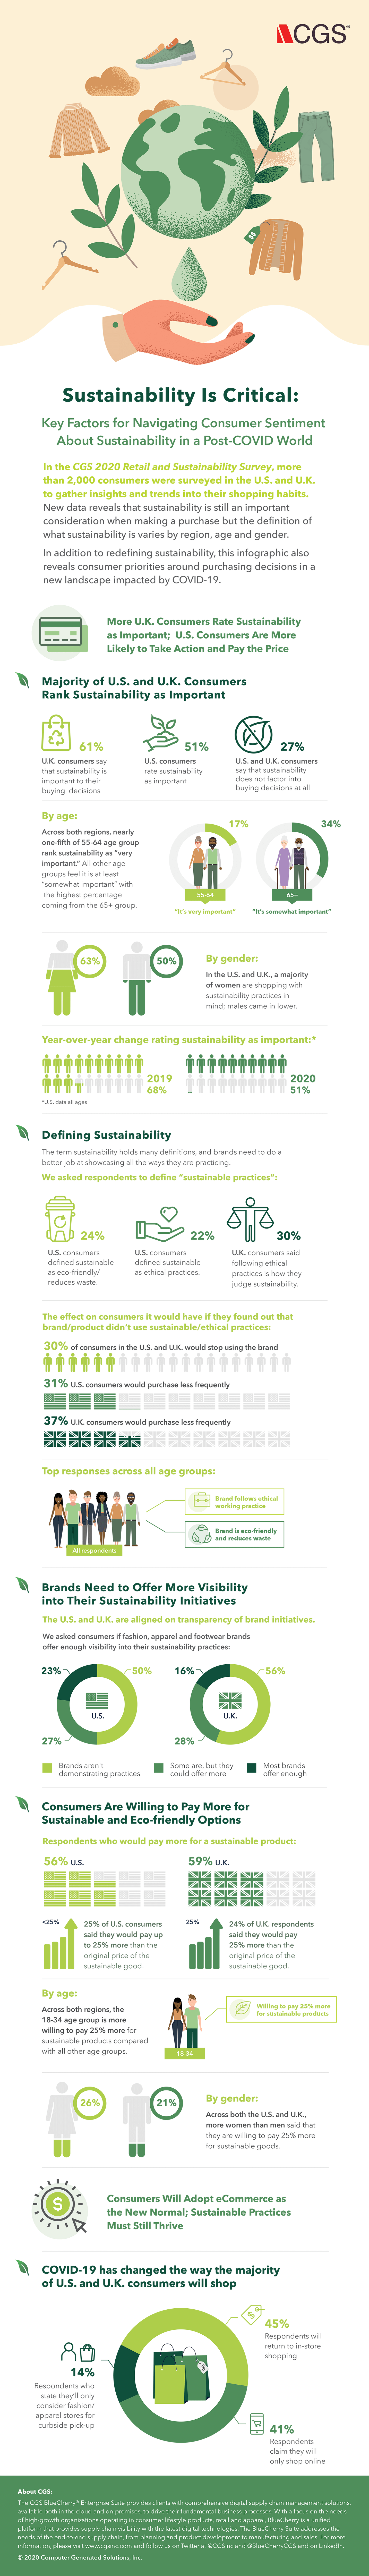 CGS 2020 Retail and Sustainability Survey Infographic